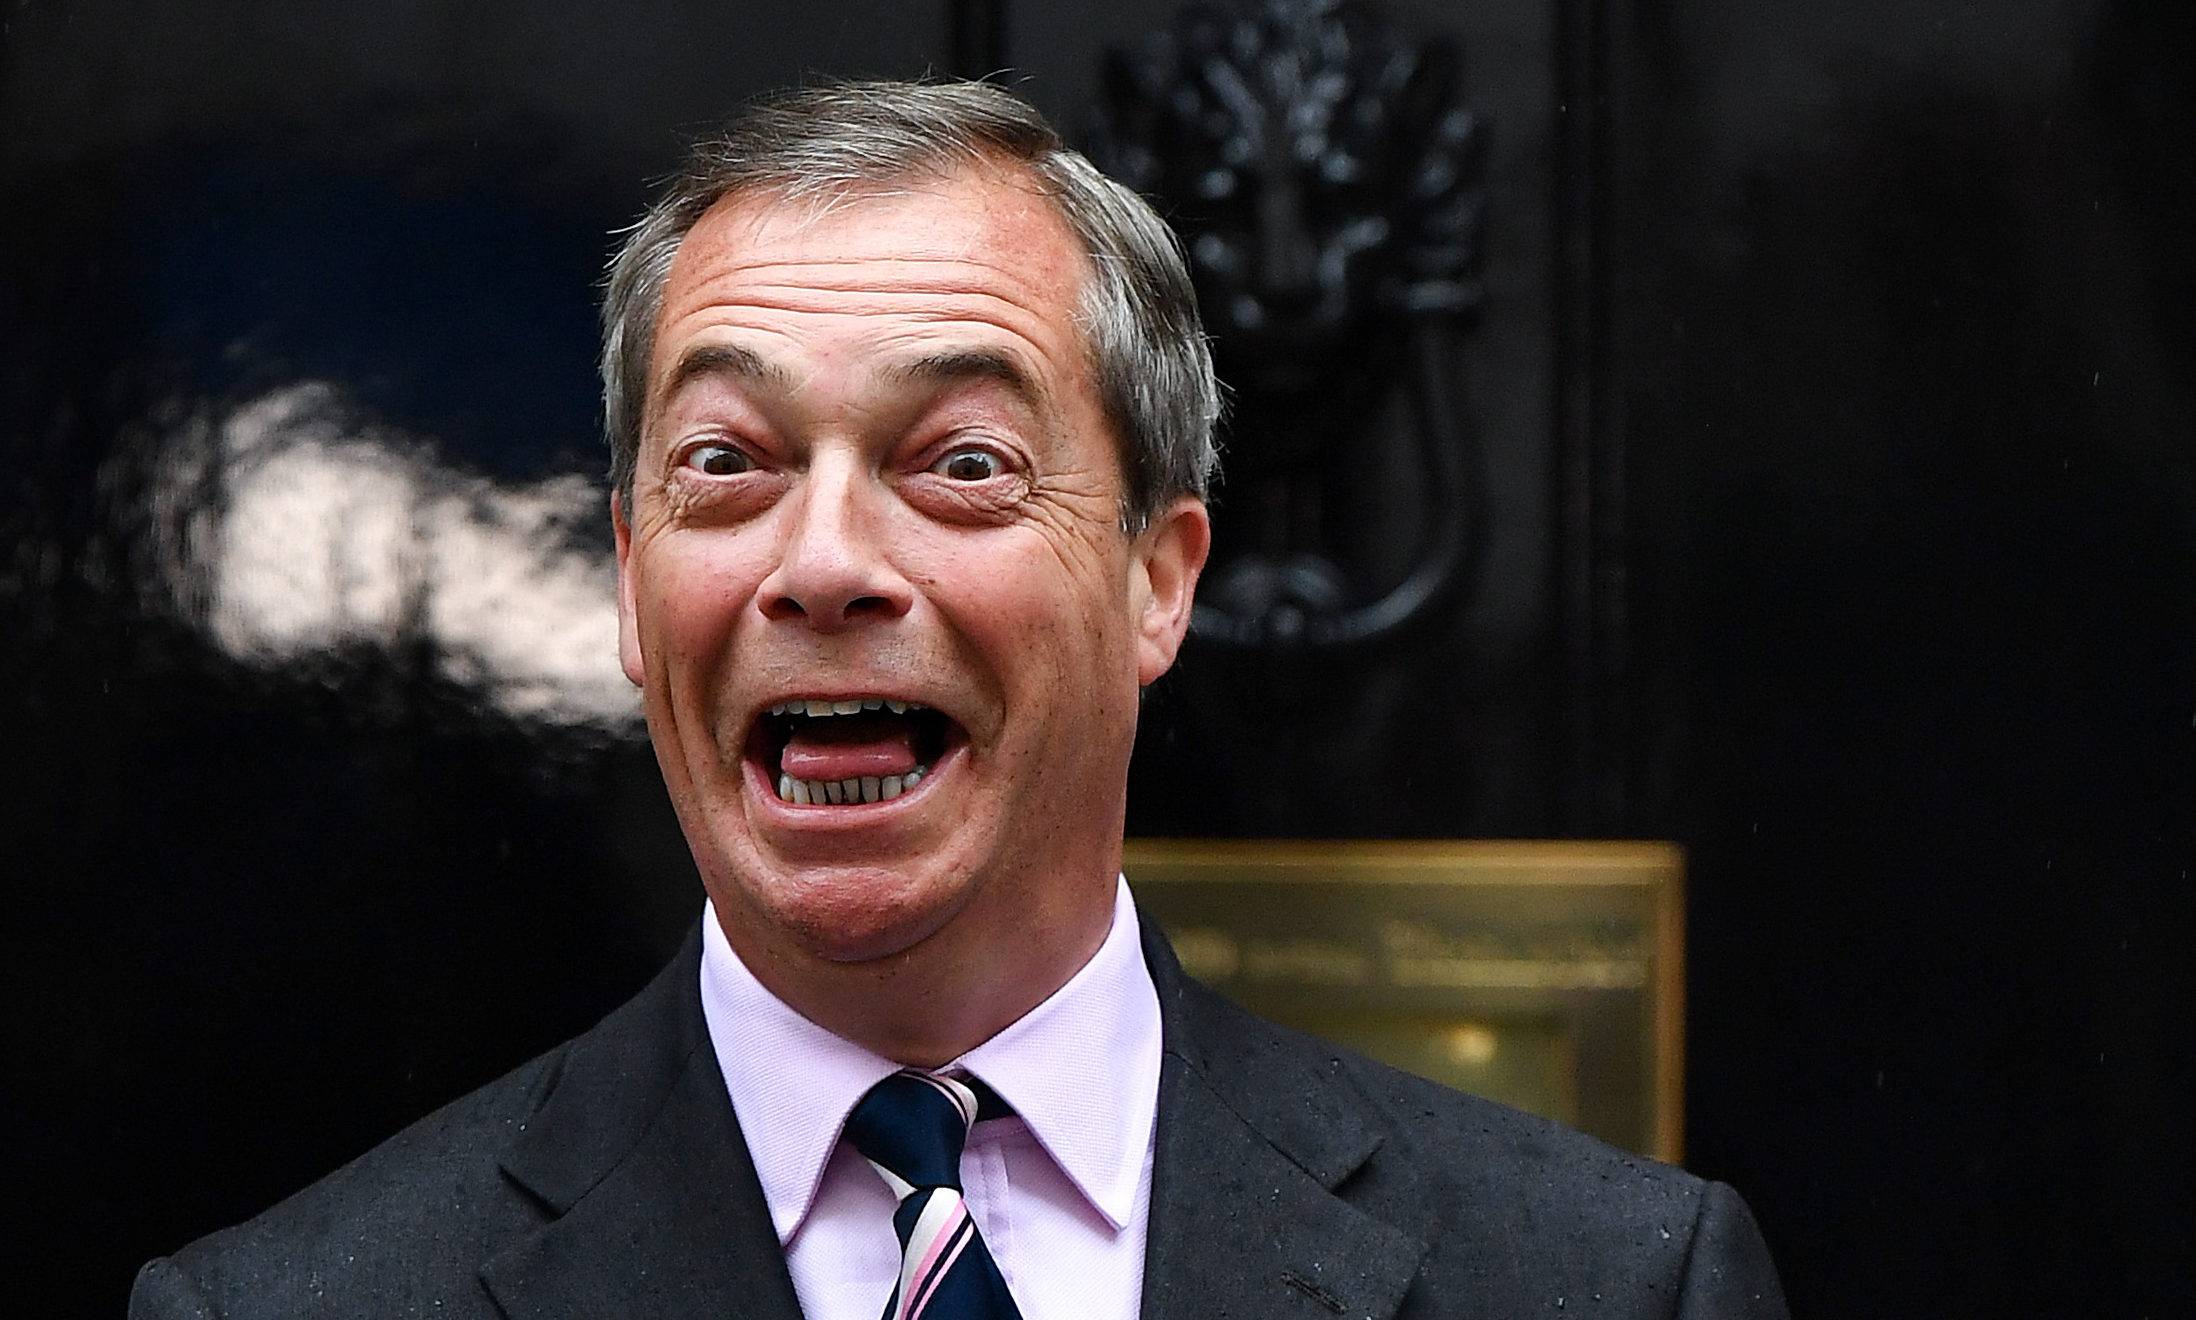 Nigel Farage, leader of the Brexit party.